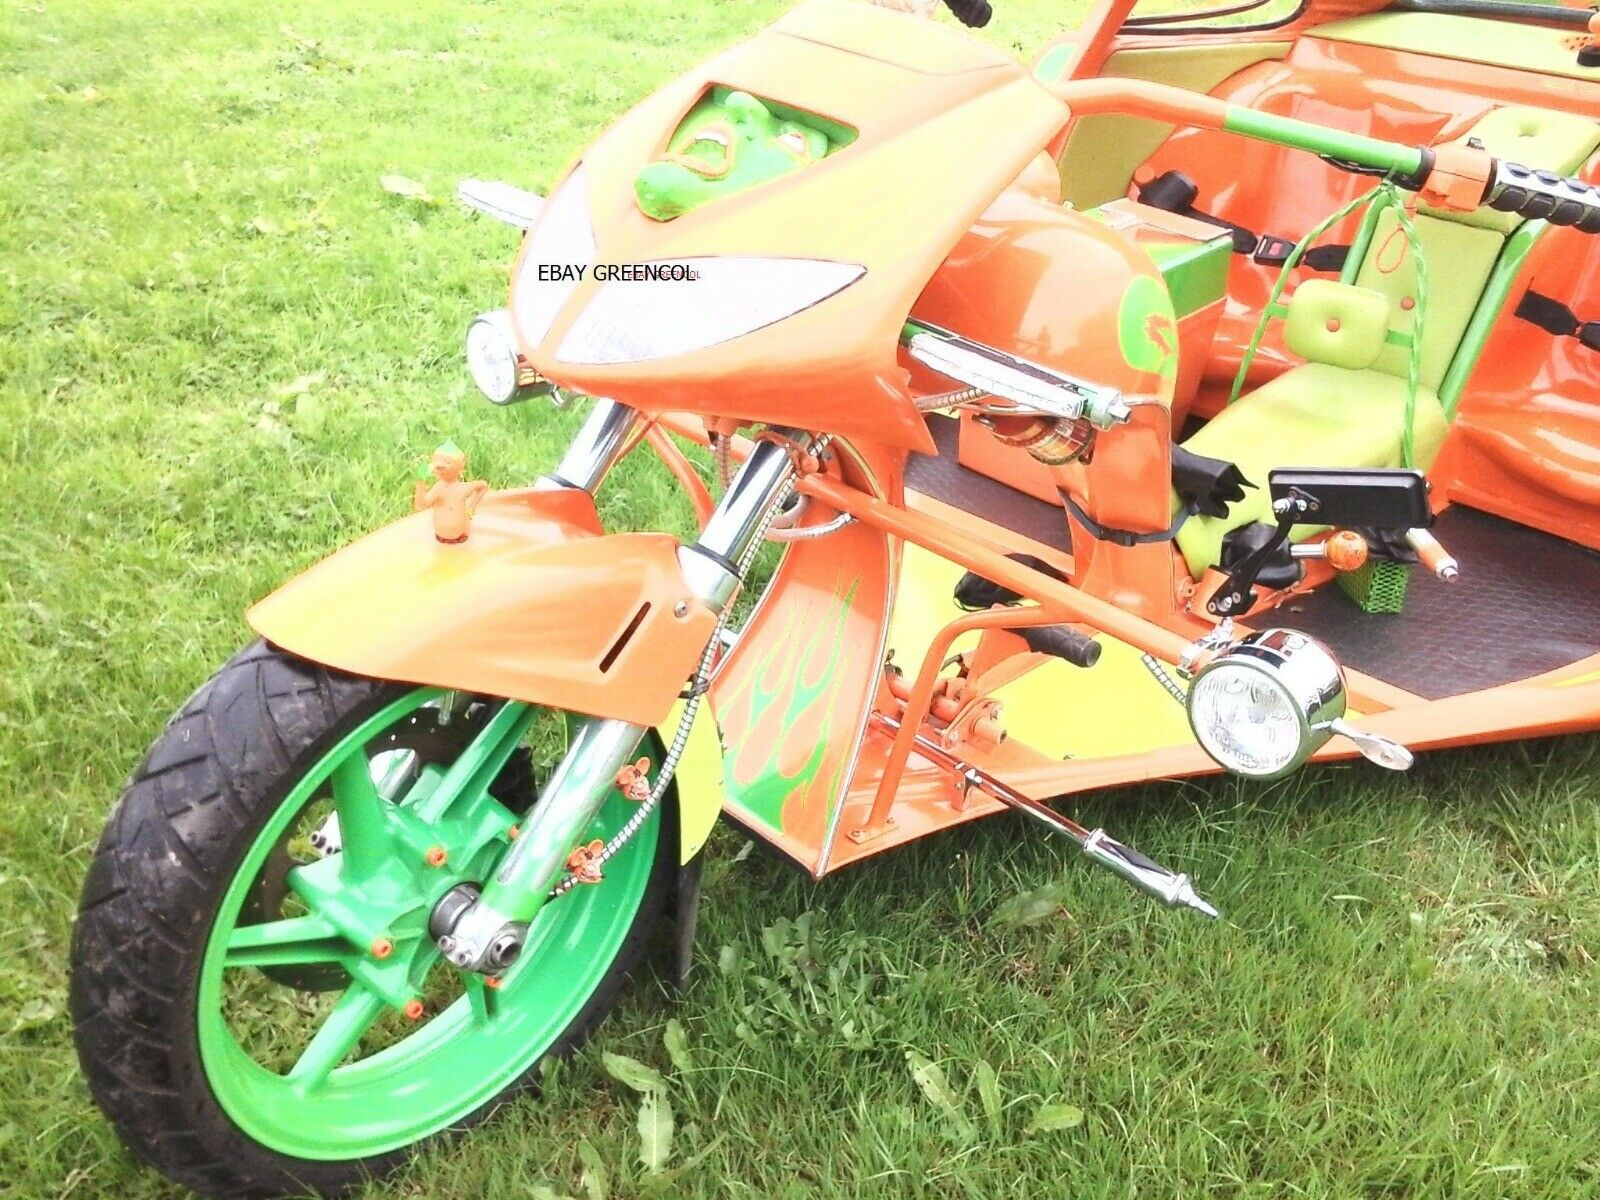 Porsche 911 Turbo Trike Is Real Up For Grabs On Ebay Autoevolution